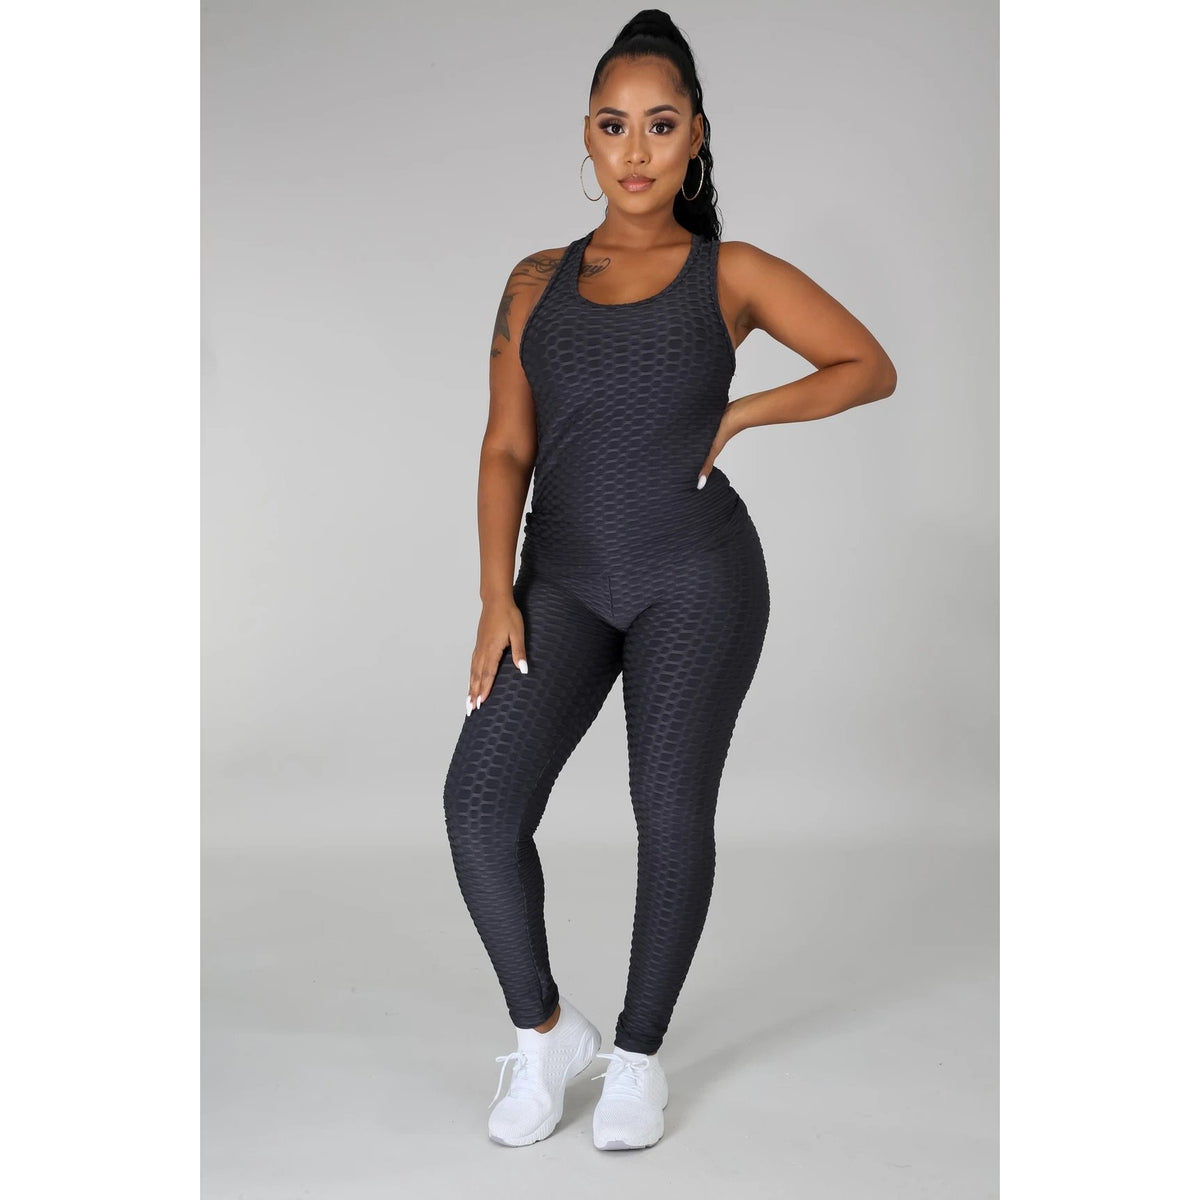 Can't Compete Legging Set